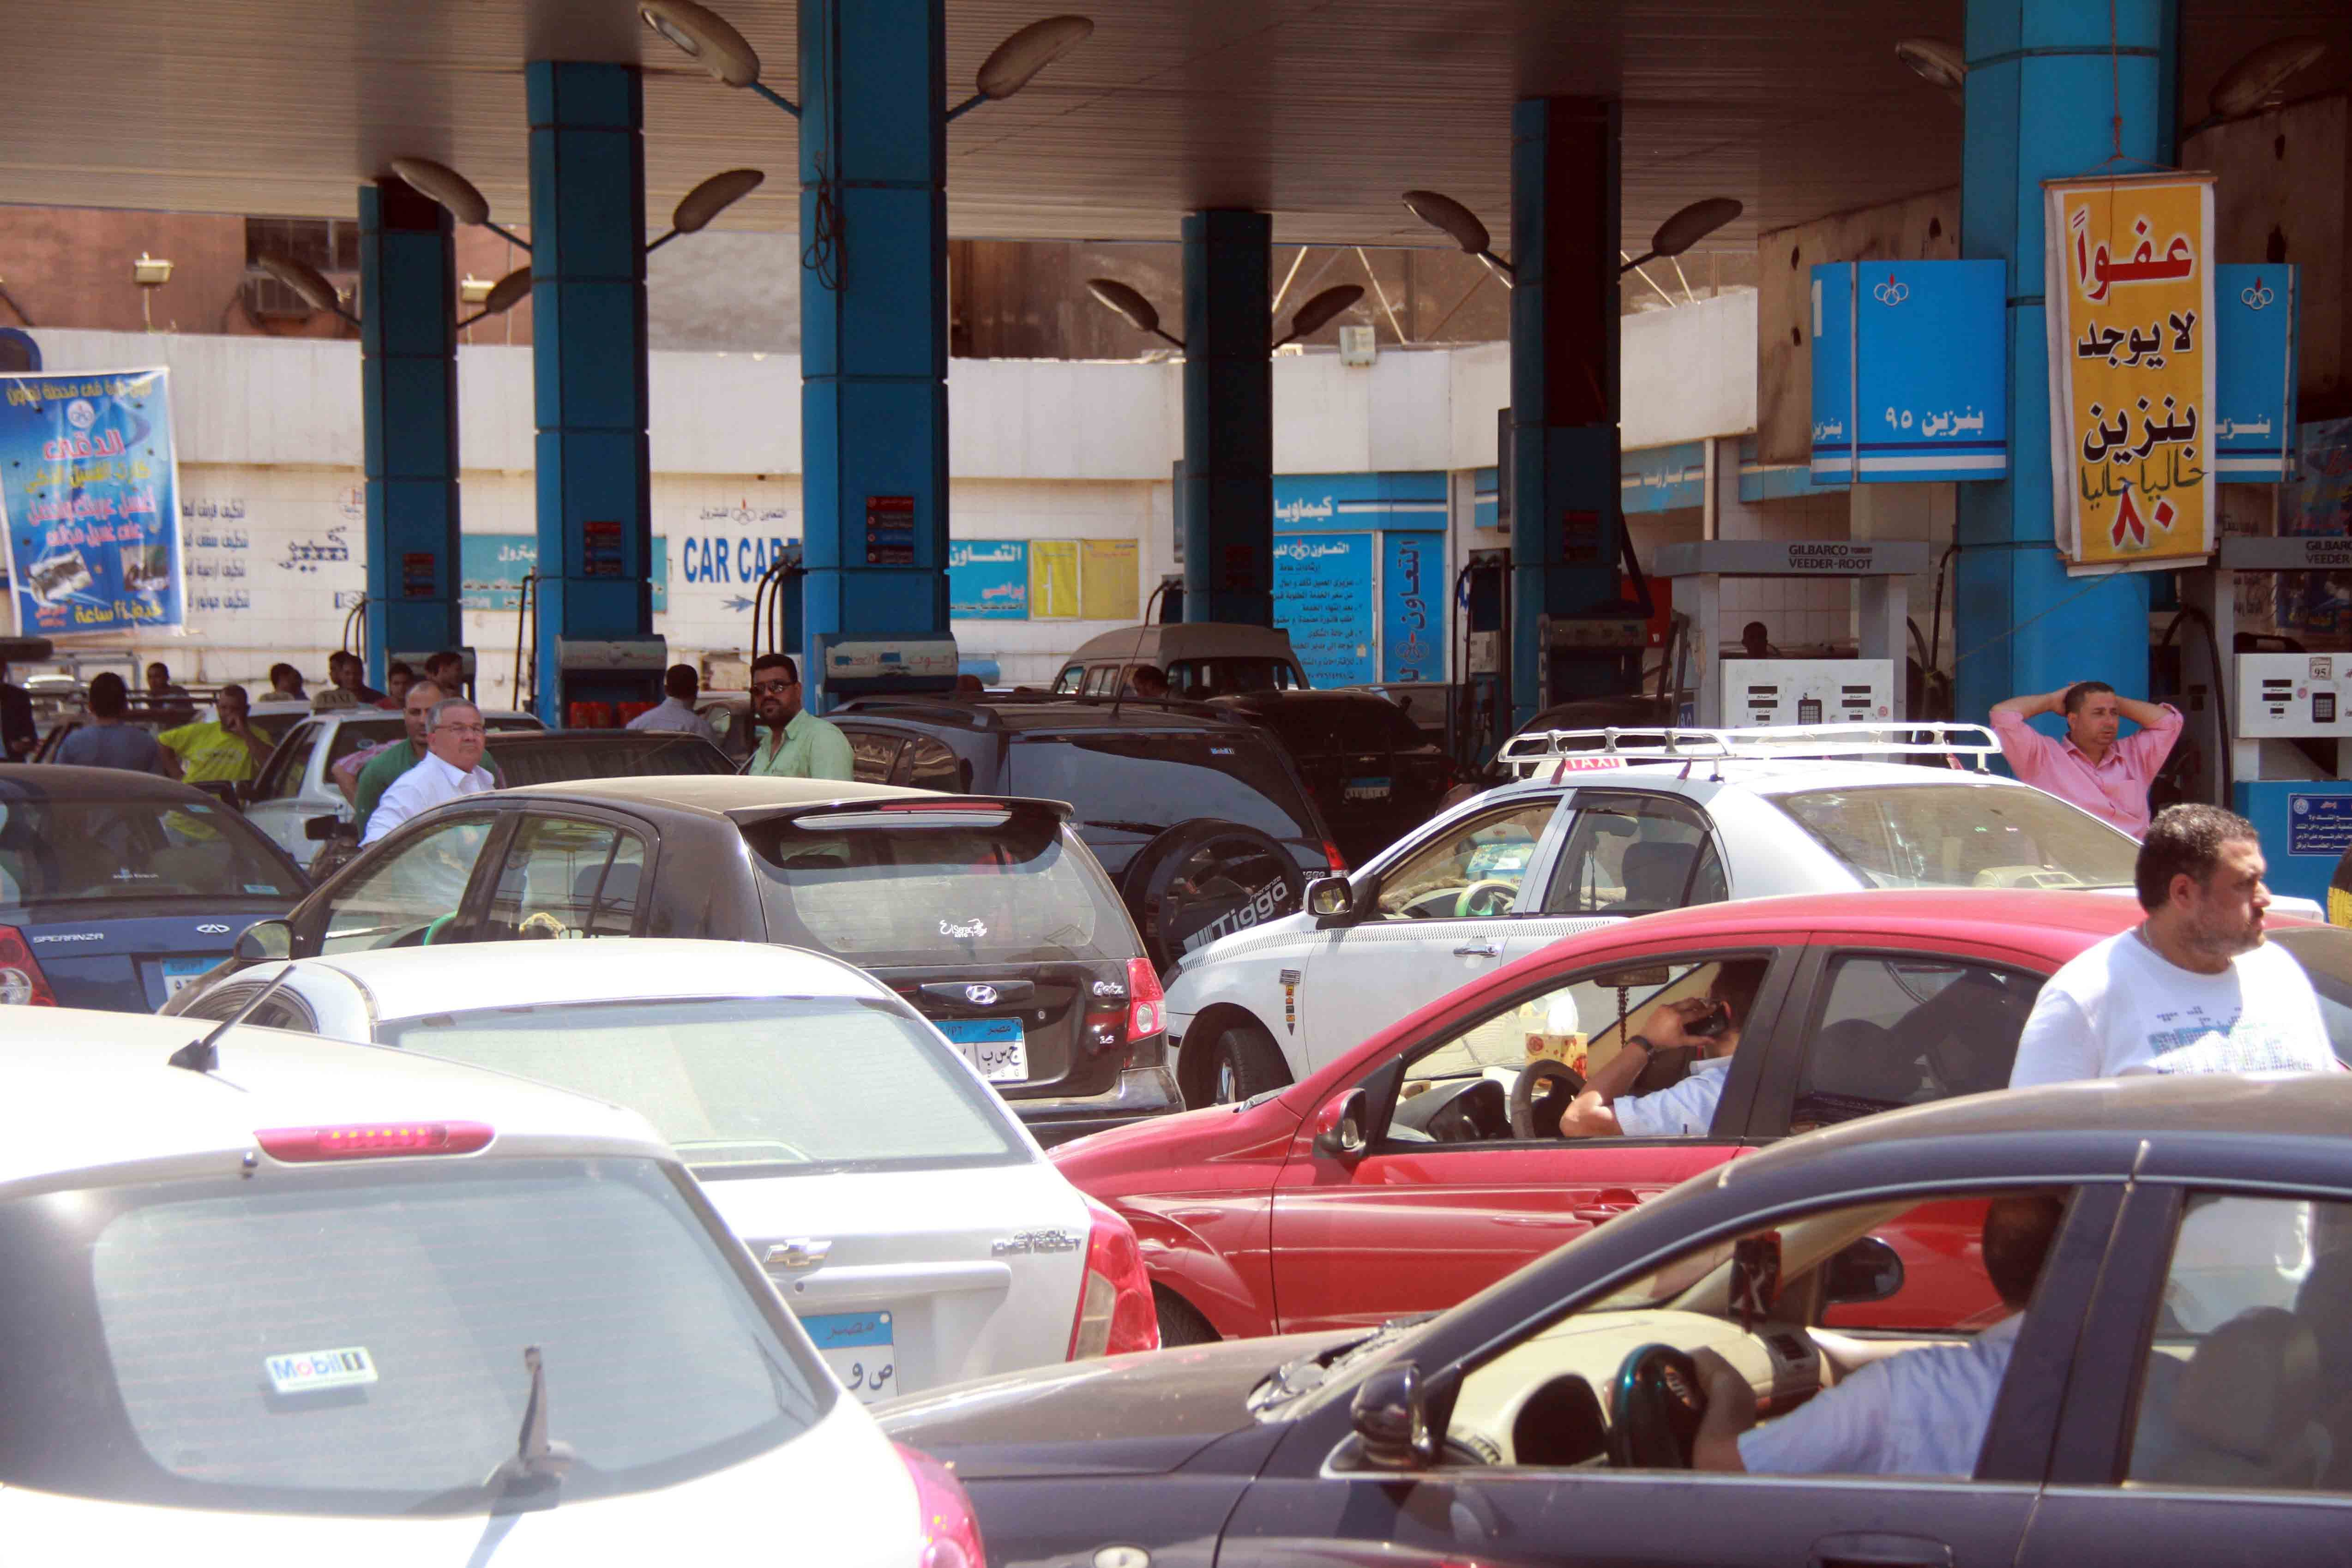 Cars queue up for gas amid rising fuel prices. The premature removal of energy subsidies, which consume EGP 128bn of the state's budget, would have a serious impact on Egypt's middle class and poor. (Photo by Mohamed Omar)